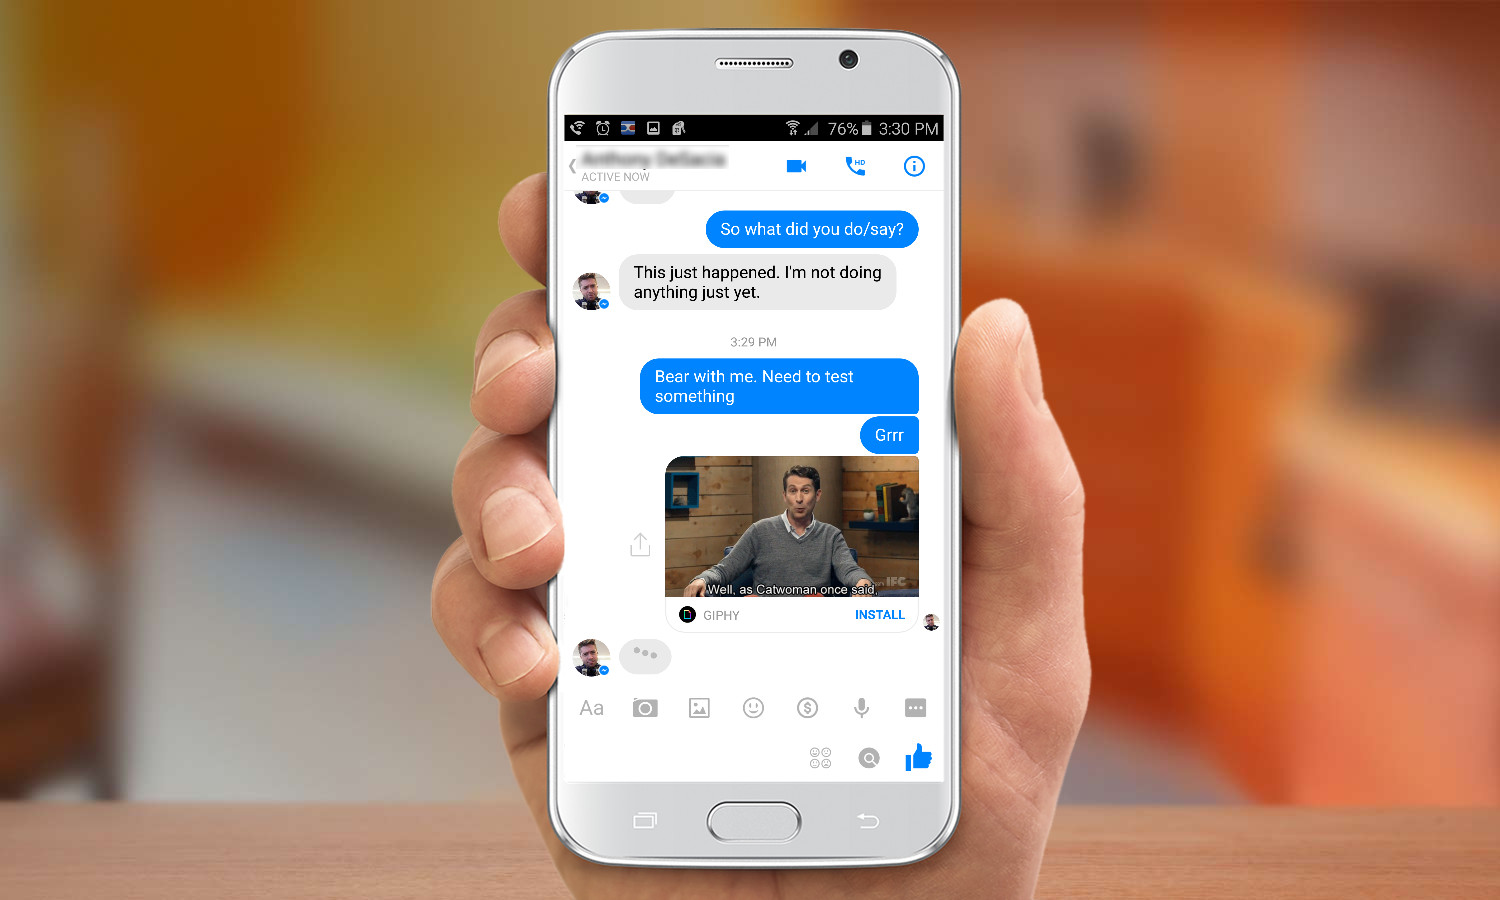 How to Send a GIF in Facebook Messenger | Tom's Guide